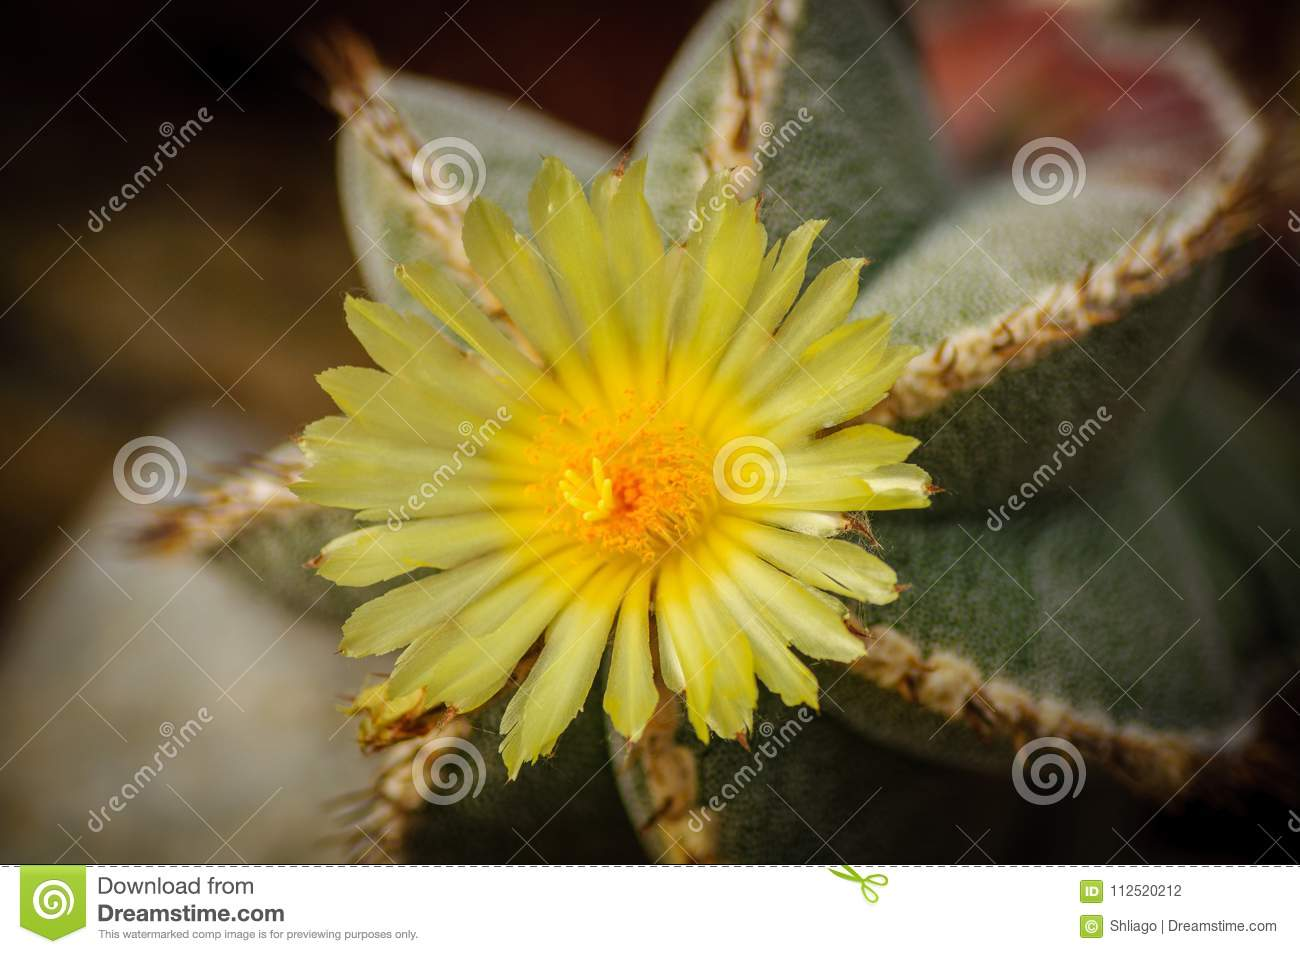 Green With Silver Dots Cactus Astrophytum With Yellow Flower Blossom